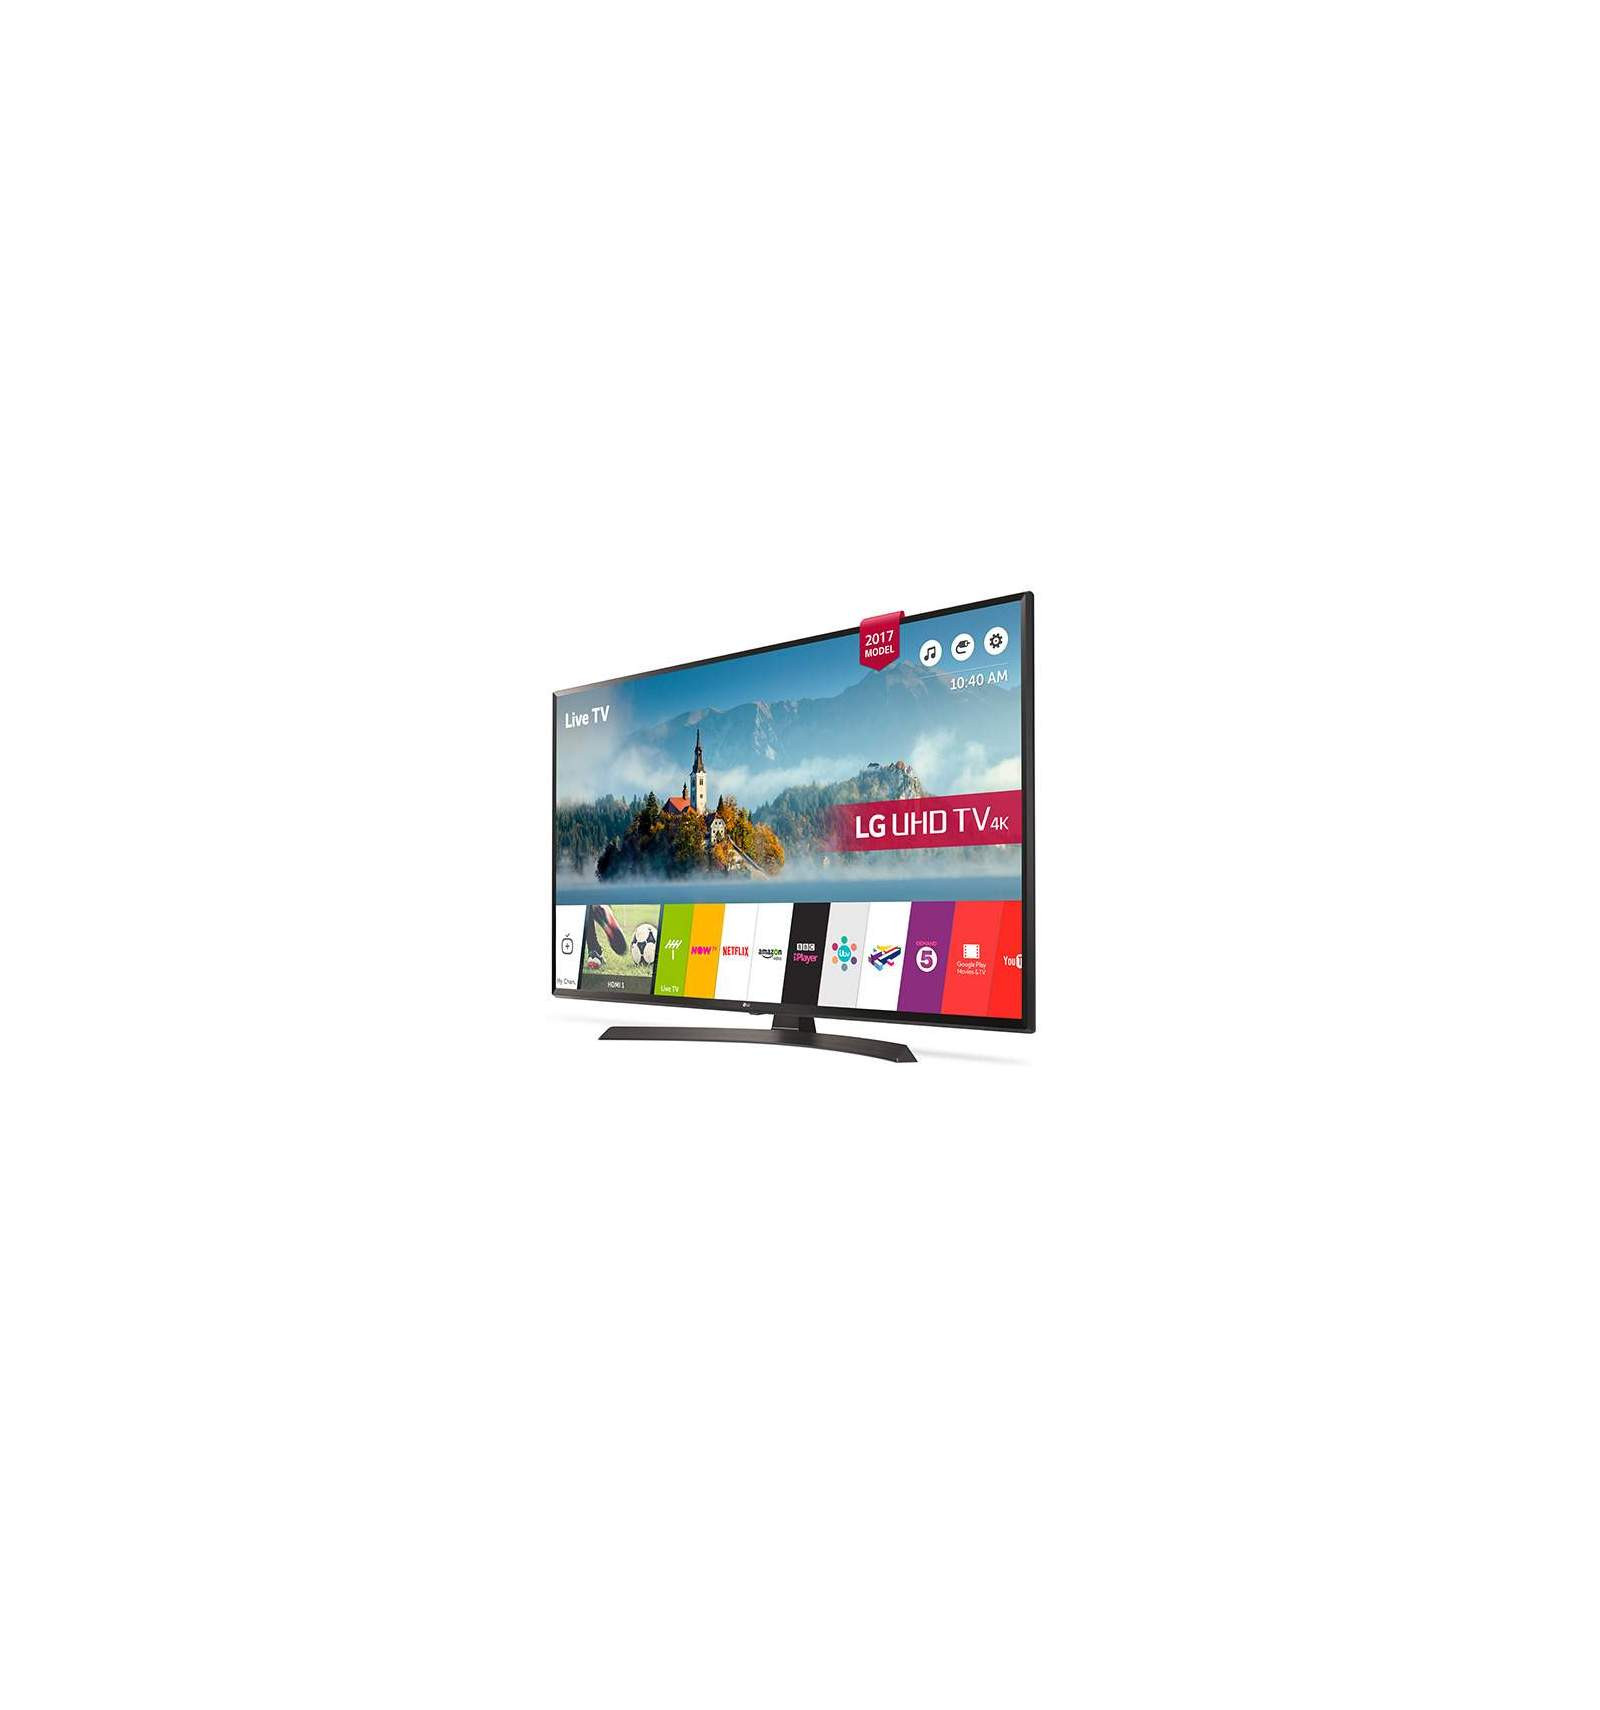 "Tv Lg 43 4k Encantador Tv 43uj634v Ultra Hd 4k 43"" Lg Of Tv Lg 43 4k Adorable Lg 43uf690v 43"" 4k Ultra Hd Tv Lg From Powerhouse Uk"